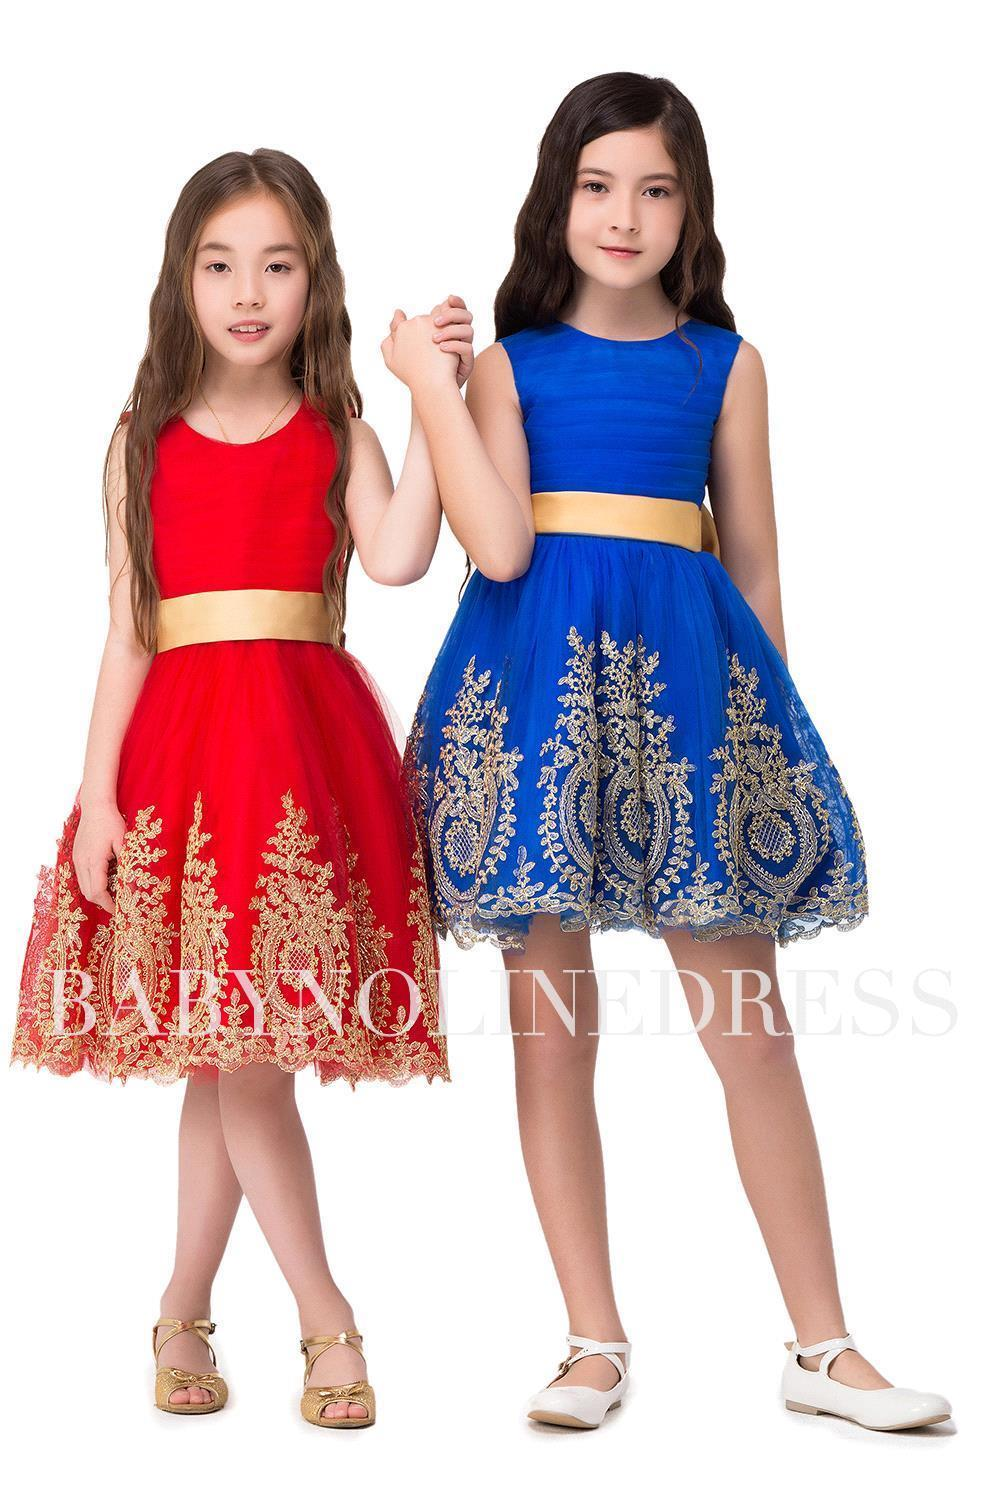 Cheap red a line knee length flower girl dresses 2017 lace appliques cheap red a line knee length flower girl dresses 2017 lace appliques royal blue girls pageant dresses with bow o neck in flower girl dresses from weddings izmirmasajfo